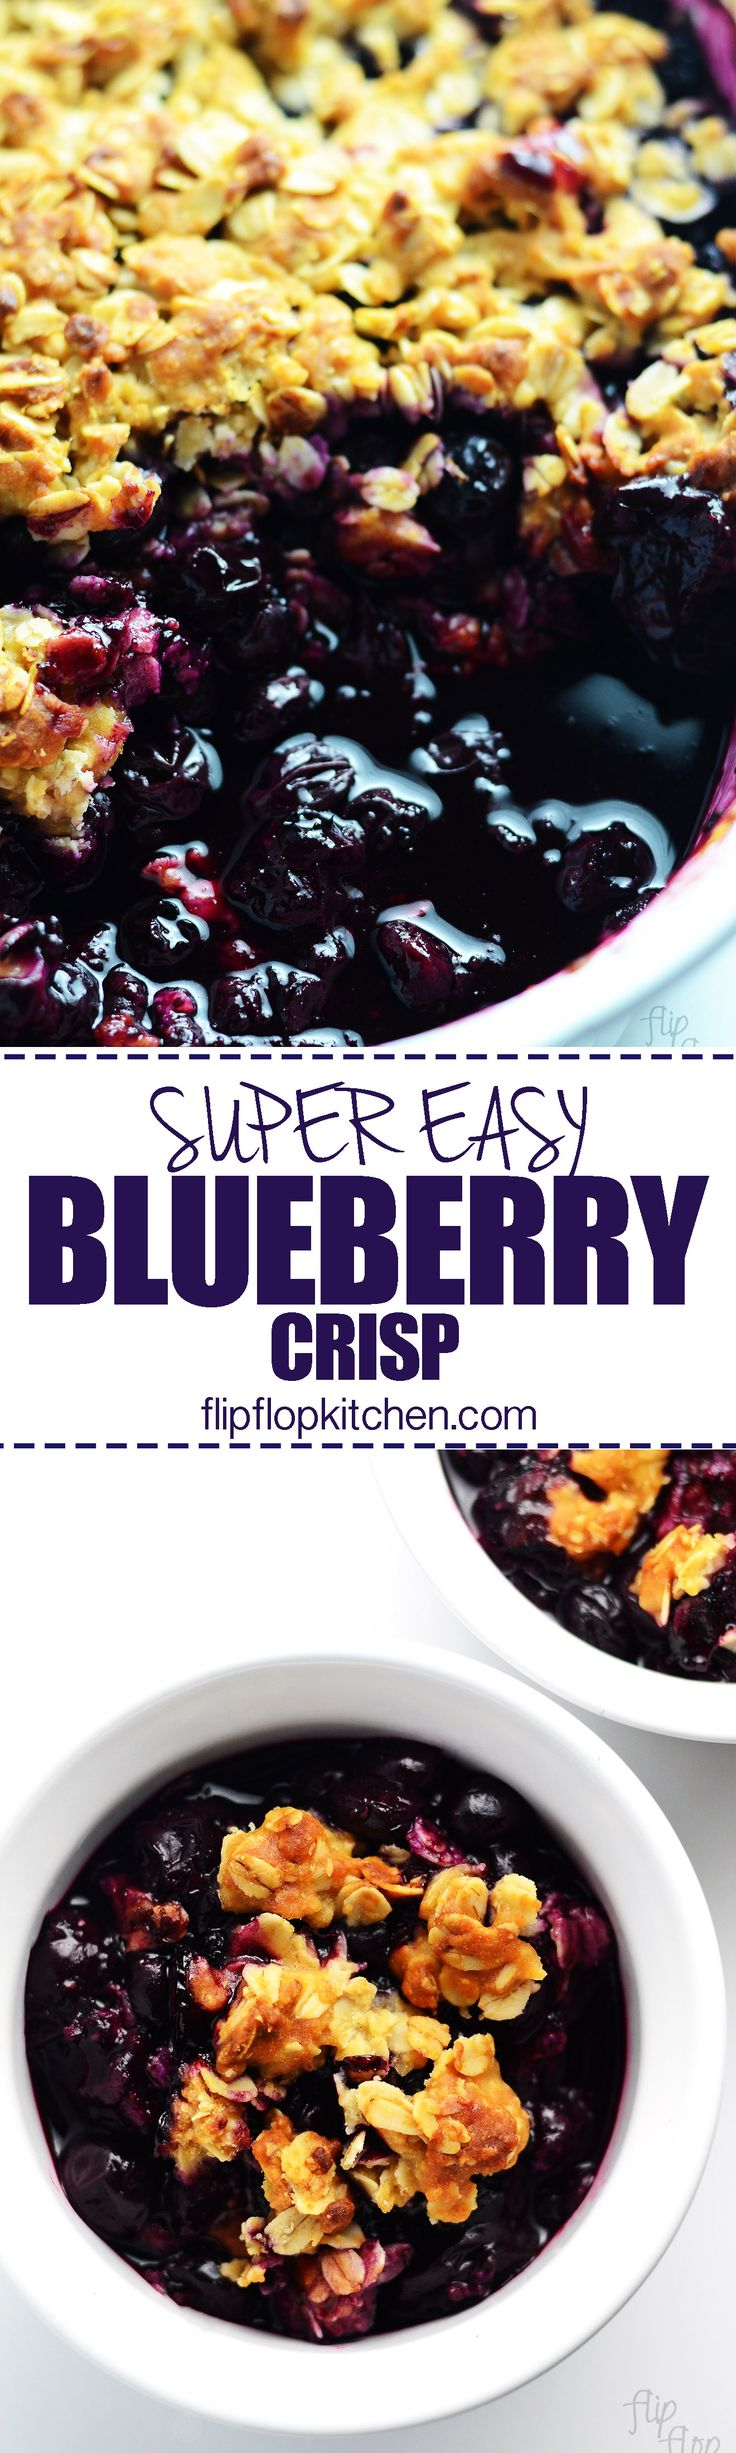 Easy Blueberry Crisp | This blueberry crisp is so easy to make. It is naturally sweetened with honey and sweet blueberries and topped with a crisp oat topping. The epitome of a healthy treat!. | flipflopkitchen.com